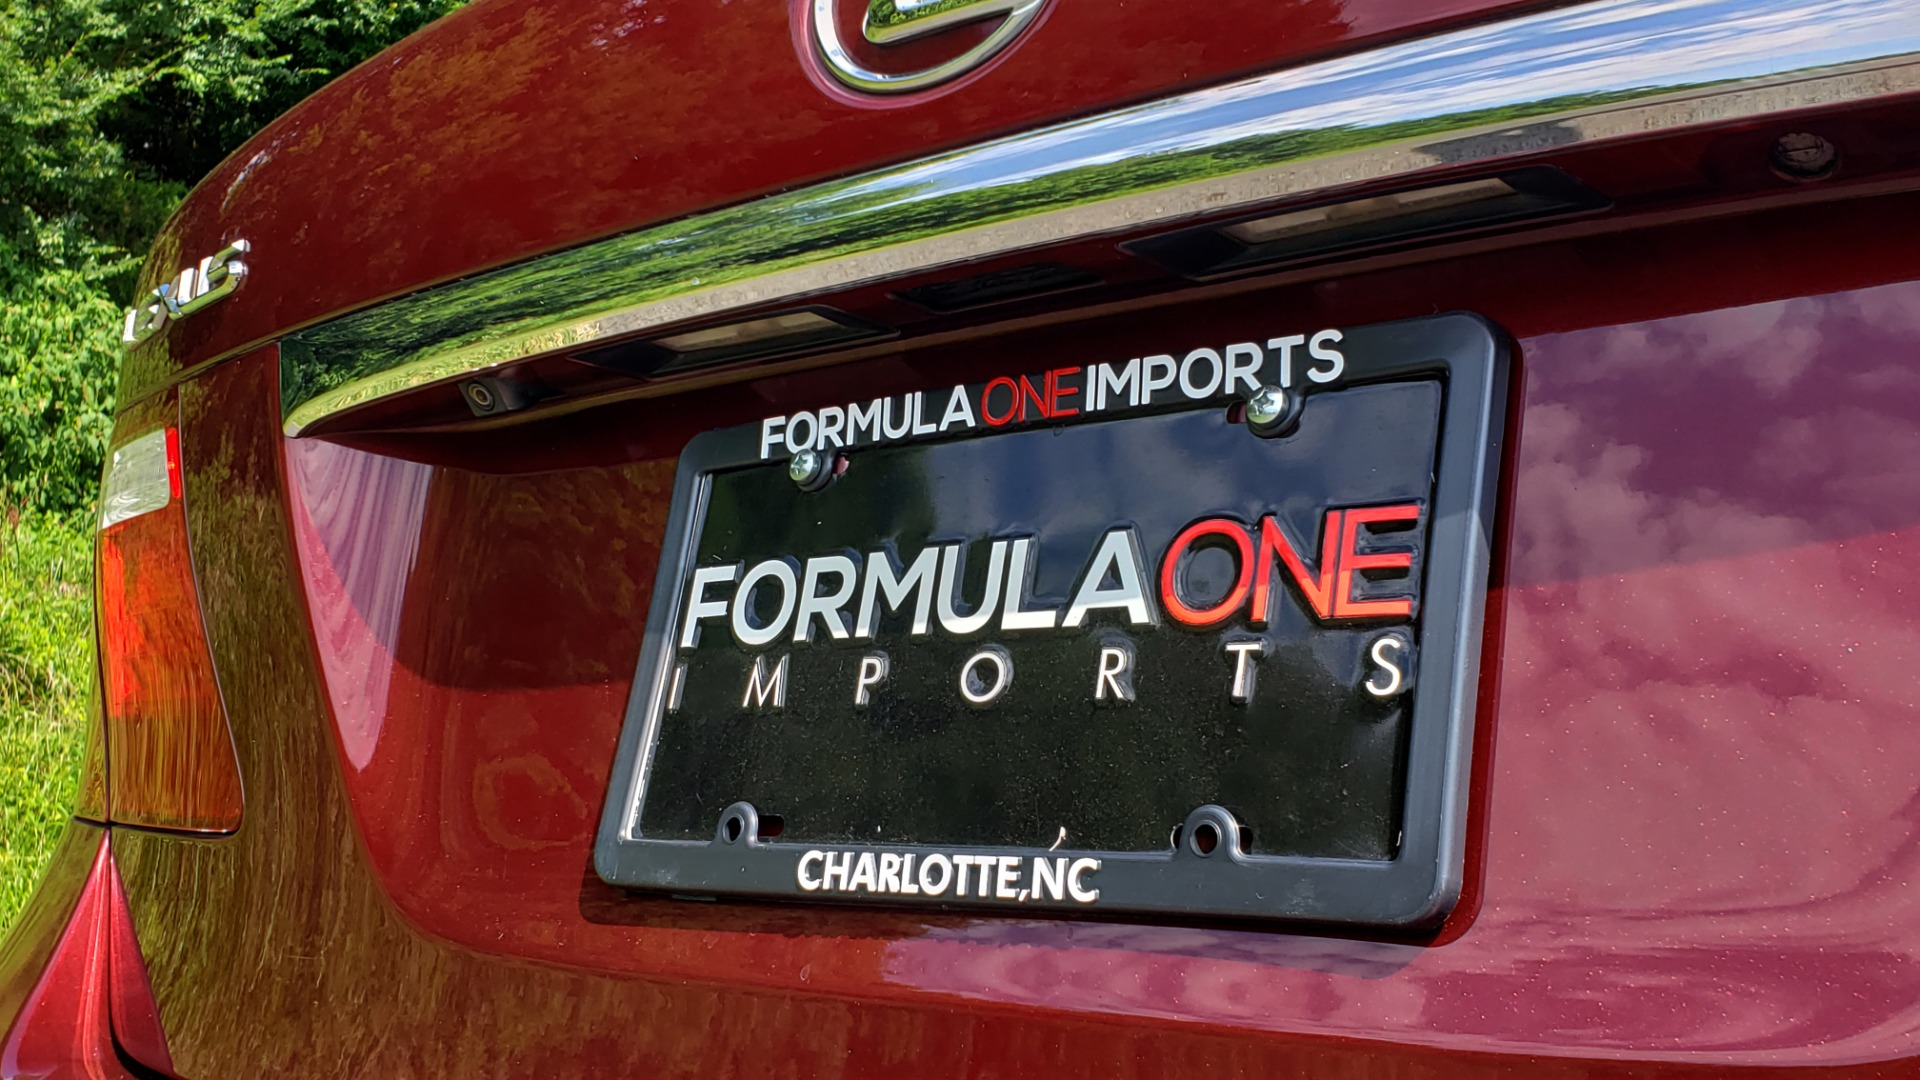 Used 2007 Lexus LS 460 LWB / LUX / NAV / SUNROOF / MARK LEVINSON SND / AIR SUSP for sale Sold at Formula Imports in Charlotte NC 28227 27